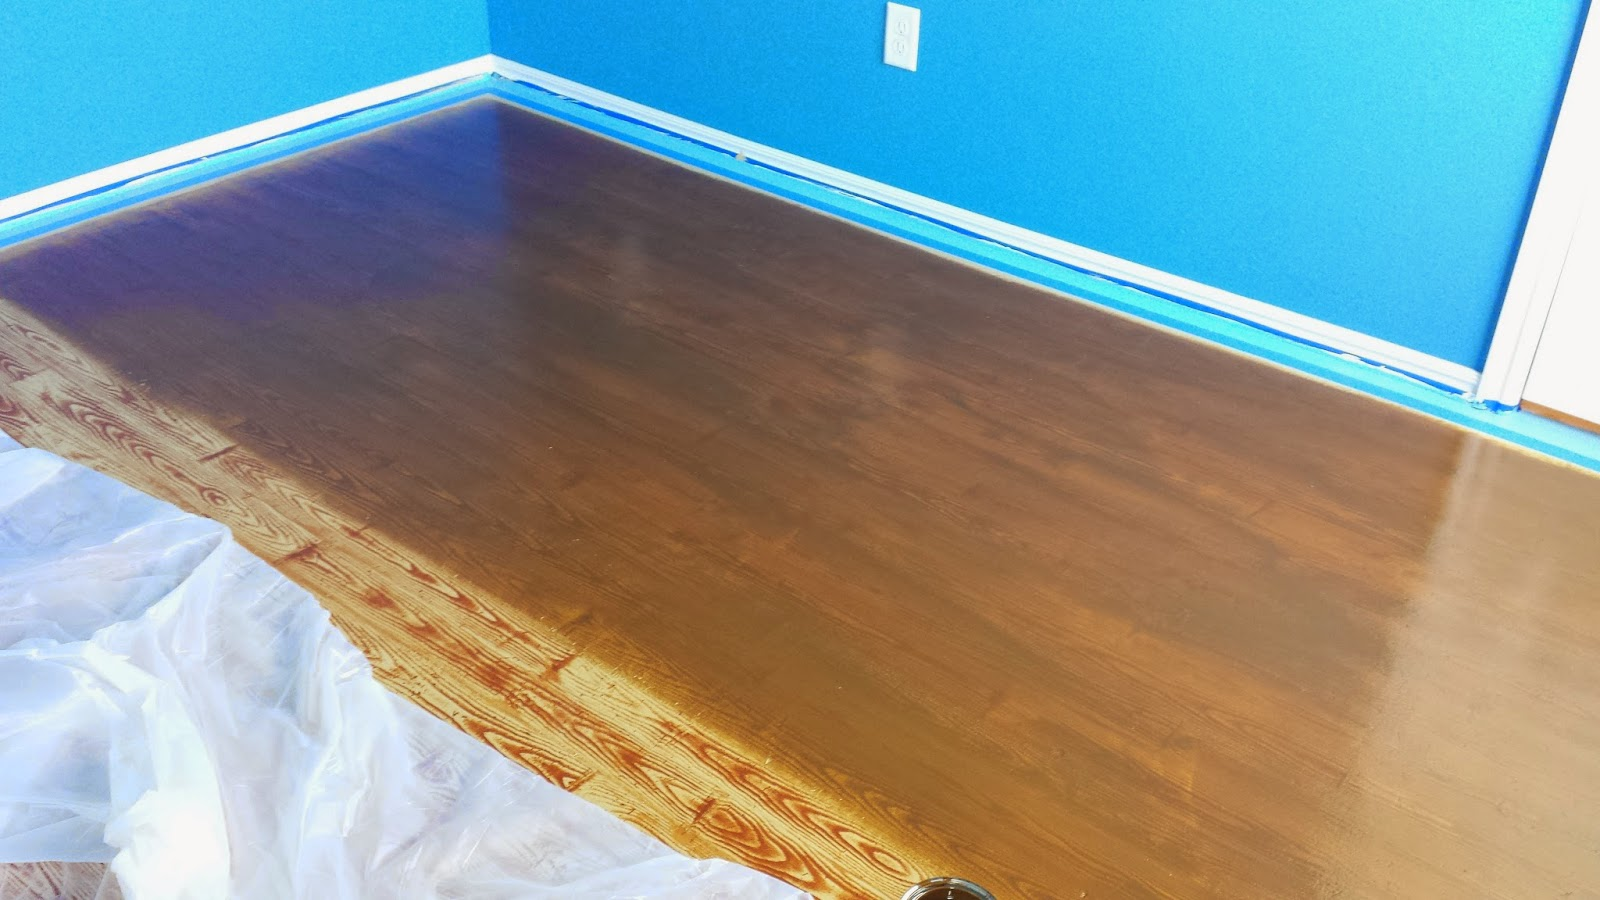 Painted Plywood - Applying wood stain